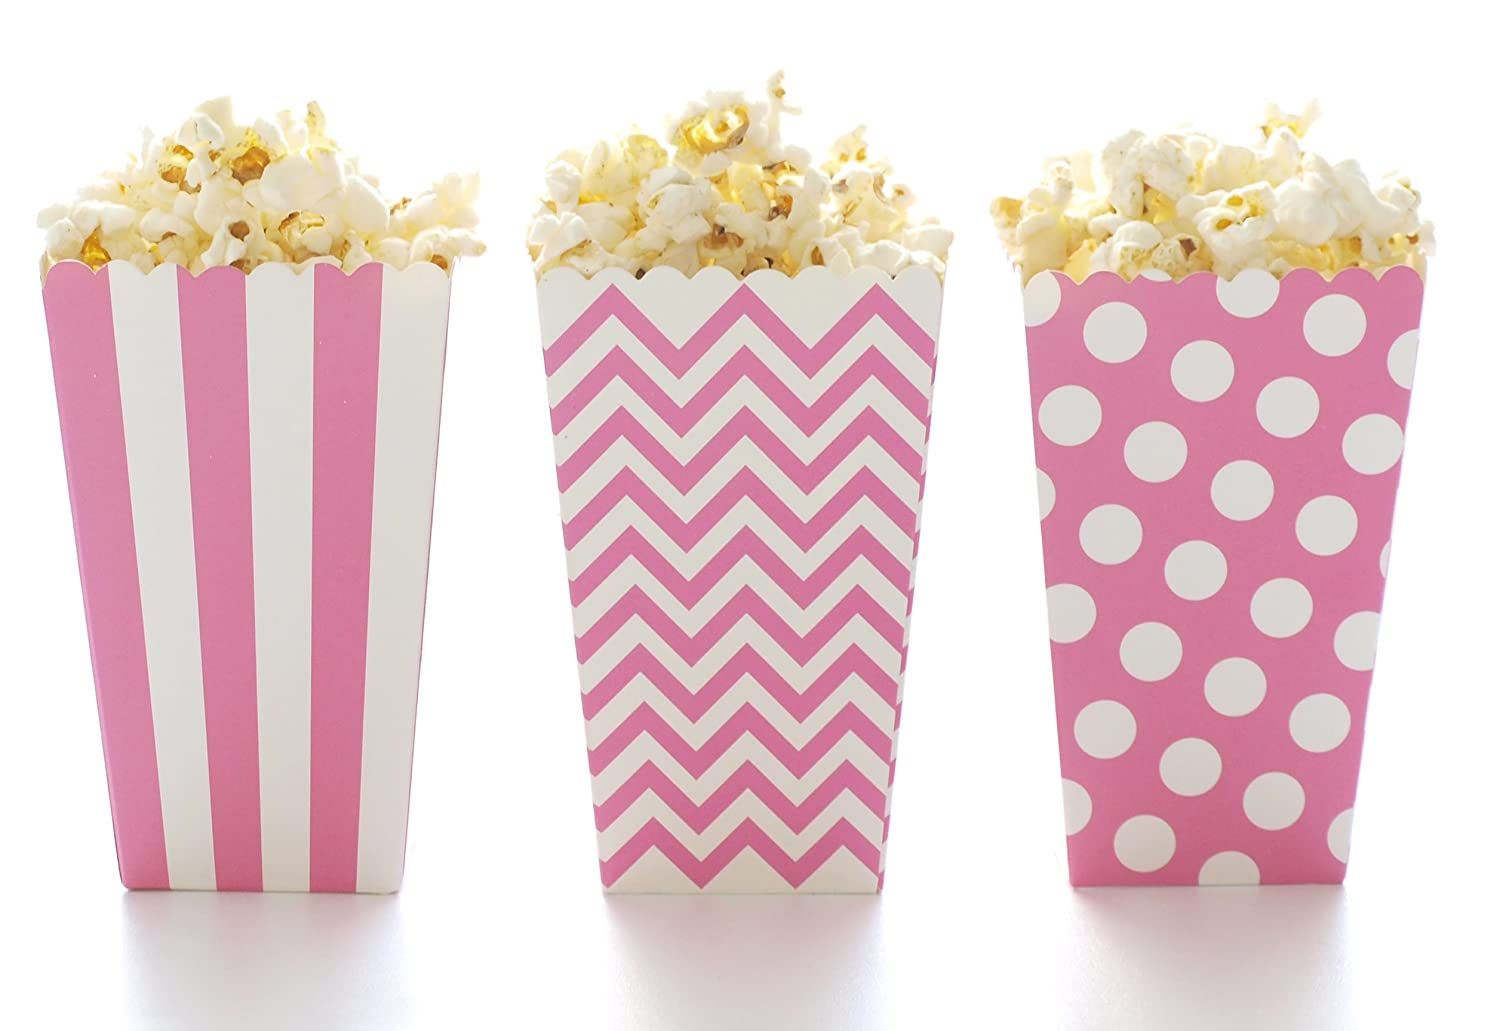 Amazon.com: Popcorn Boxes, Hot Pink Design Trio (36 Pack) - Polka ...